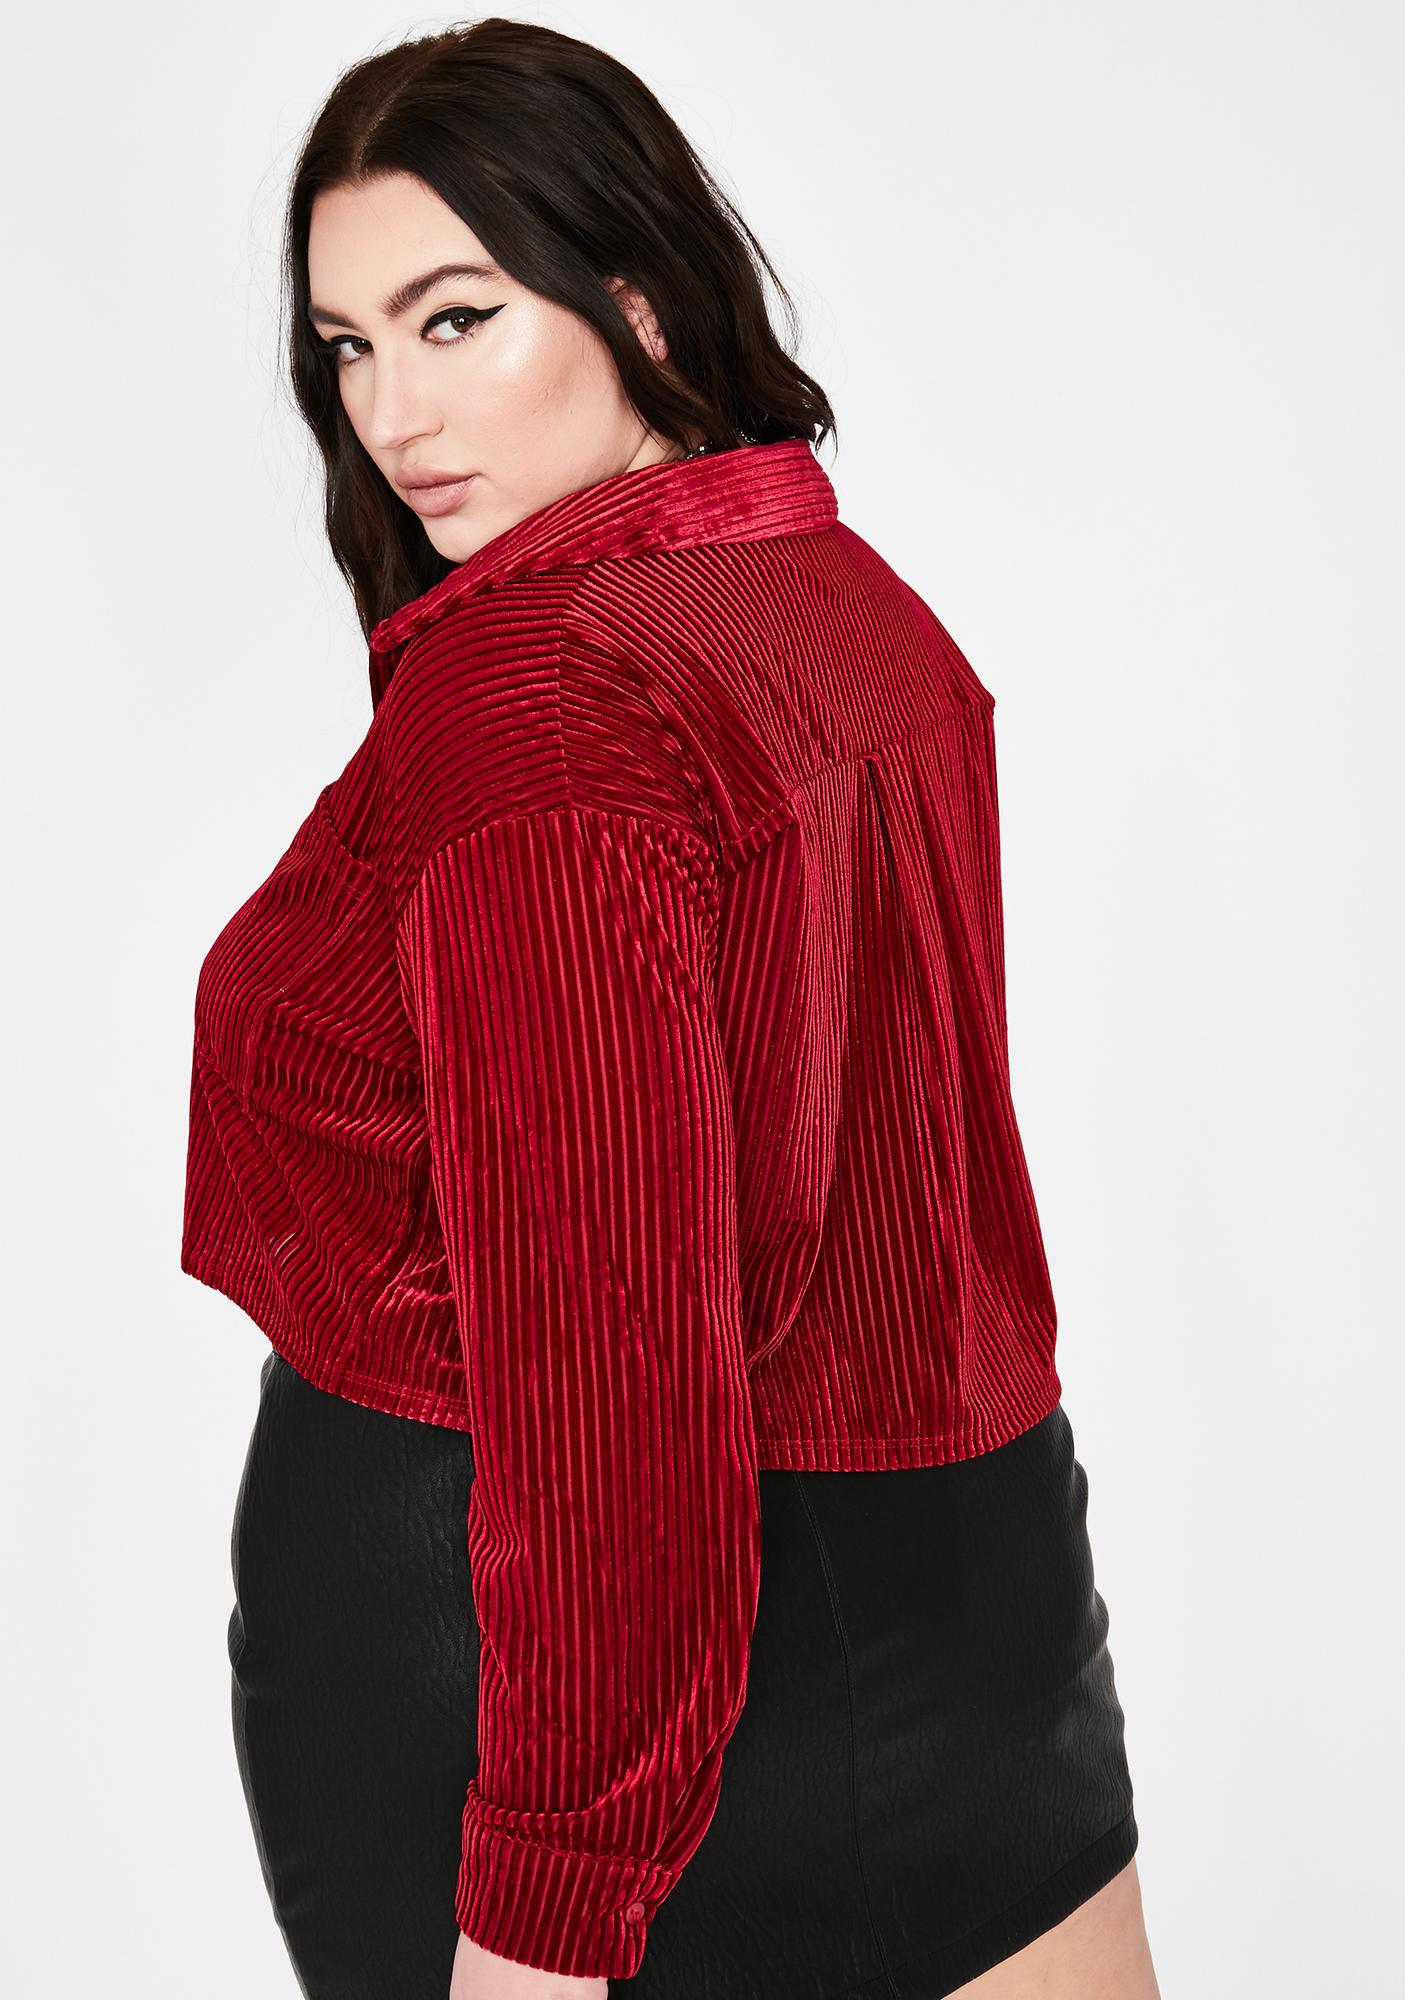 Ruby Bae Borderline Obsessed Velvet Top